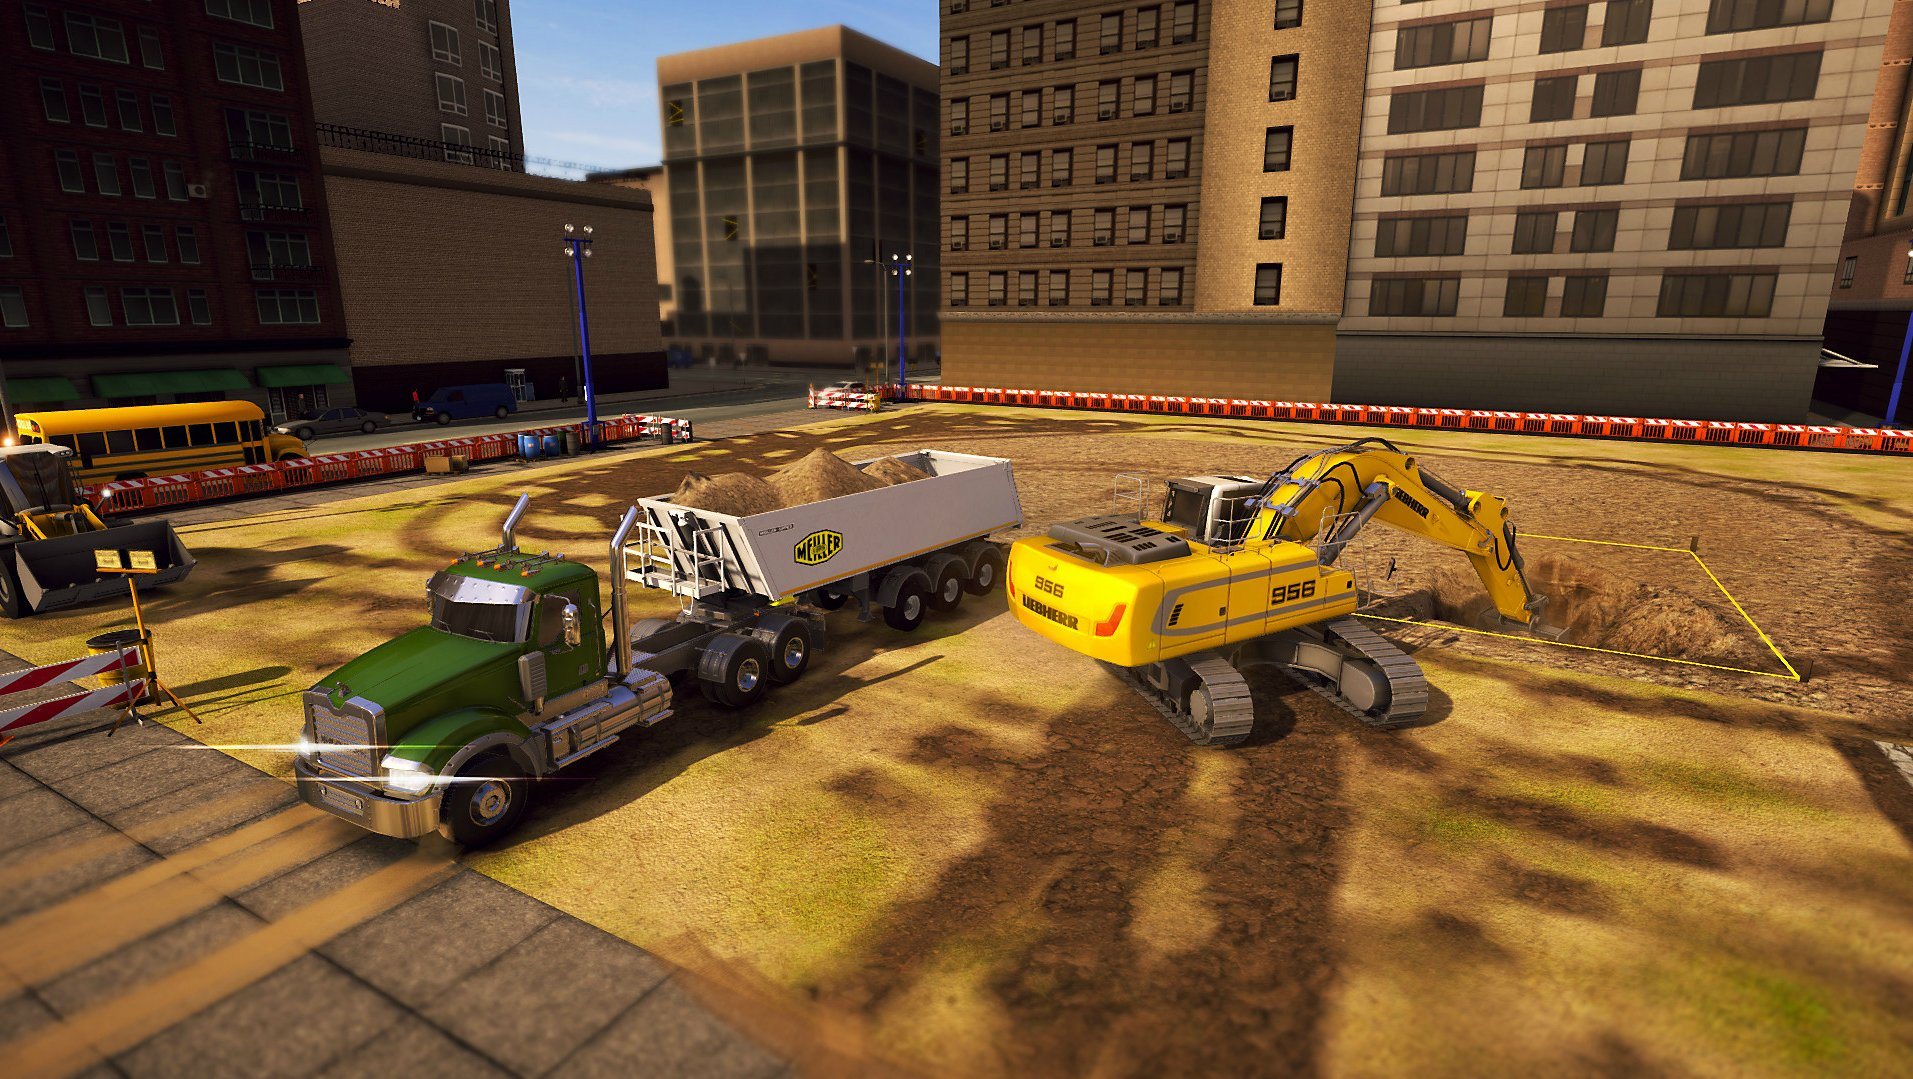 Deconstructing construction — Construction Simulator 2